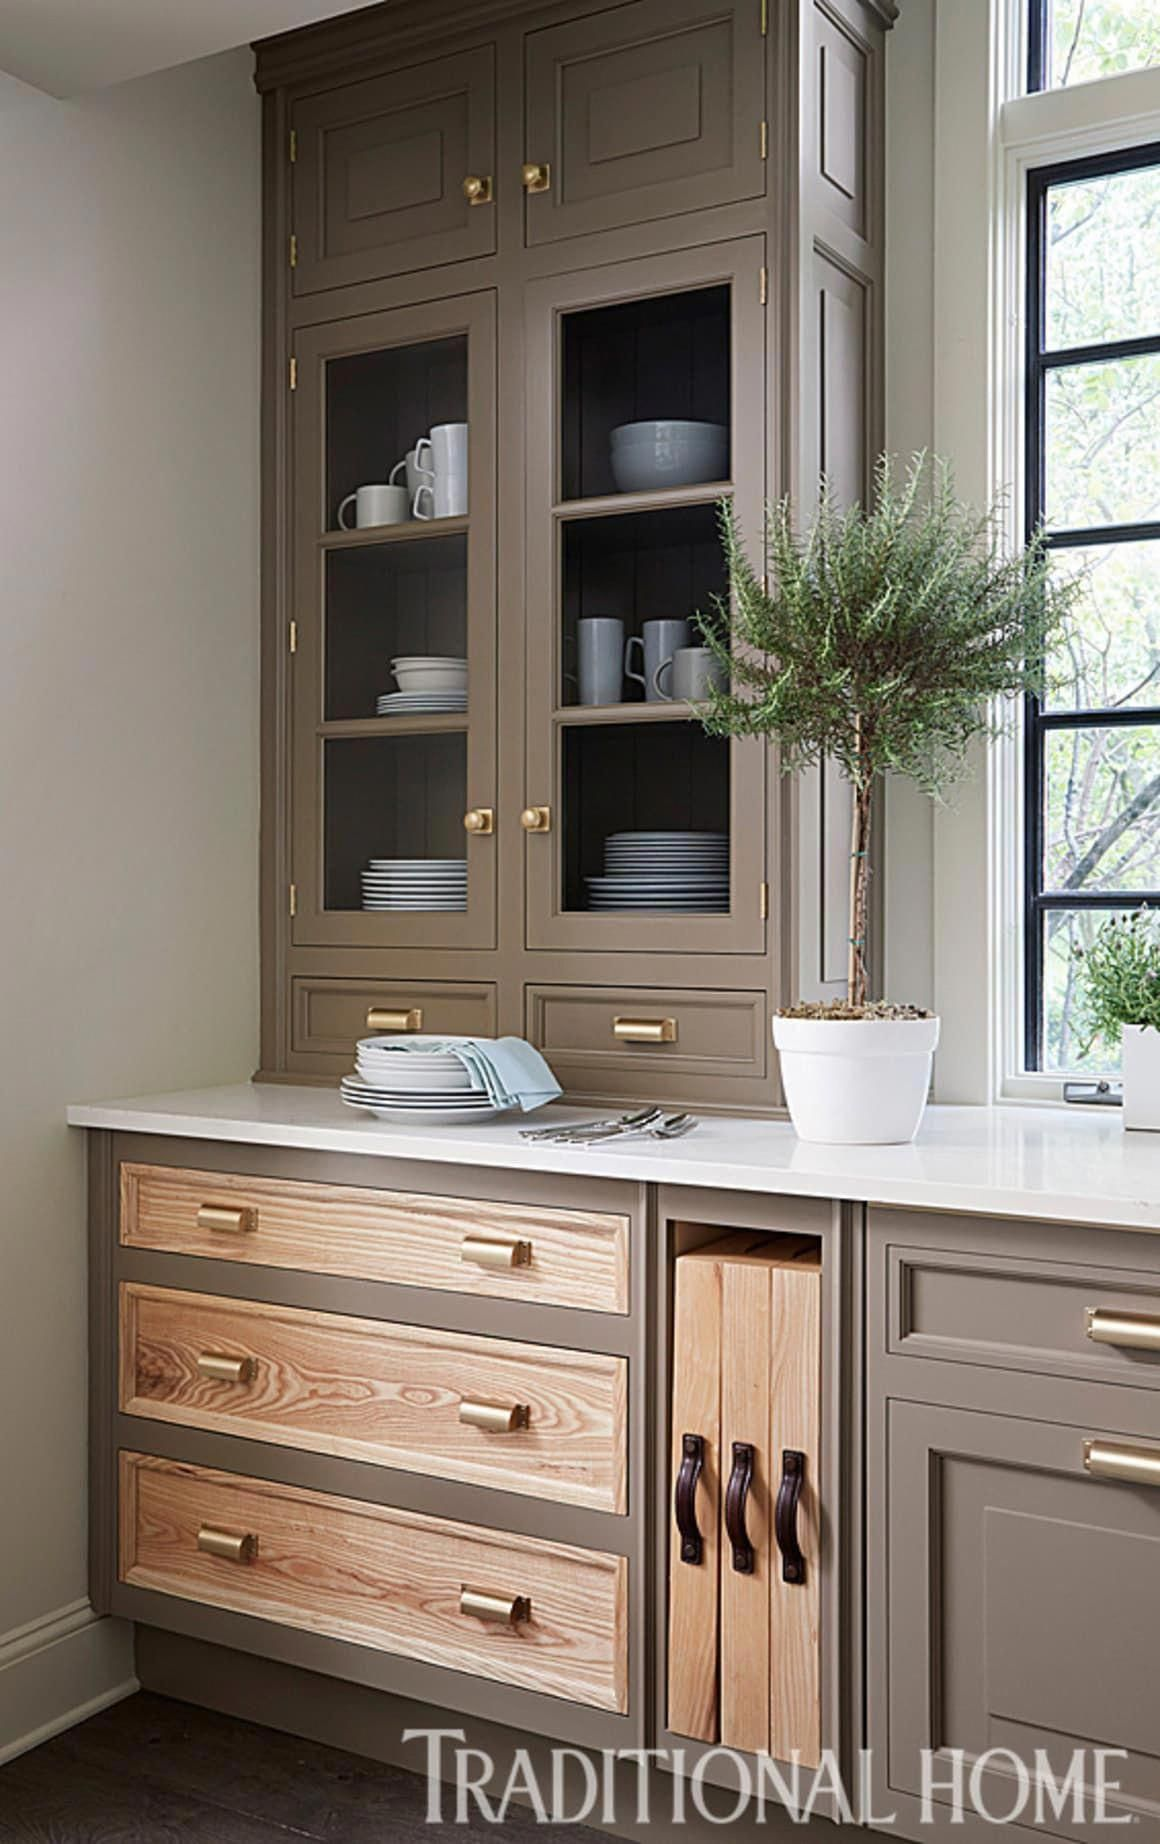 The 2017 Colors Of The Year According To Paint Companies In 2020 Cabinet Door Styles New Kitchen Cabinets Kitchen Design